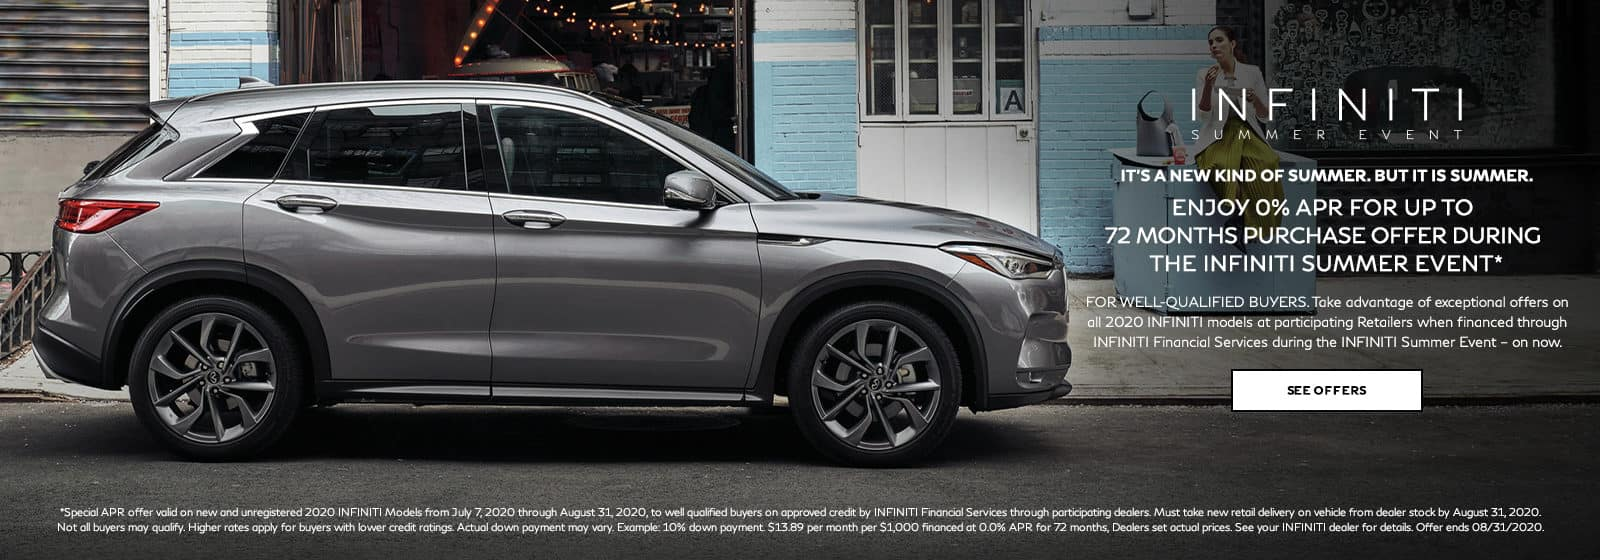 INFINITI Summer Event. No Payments for up to 90 Days on purchase or lease of all 2020 INFINITI Models. Plus 0% APR for up to 72 months purchase offer. For well-qualified buyers. Restrictions may apply. See retailer for complete details. Offer ends August 31st, 2020.